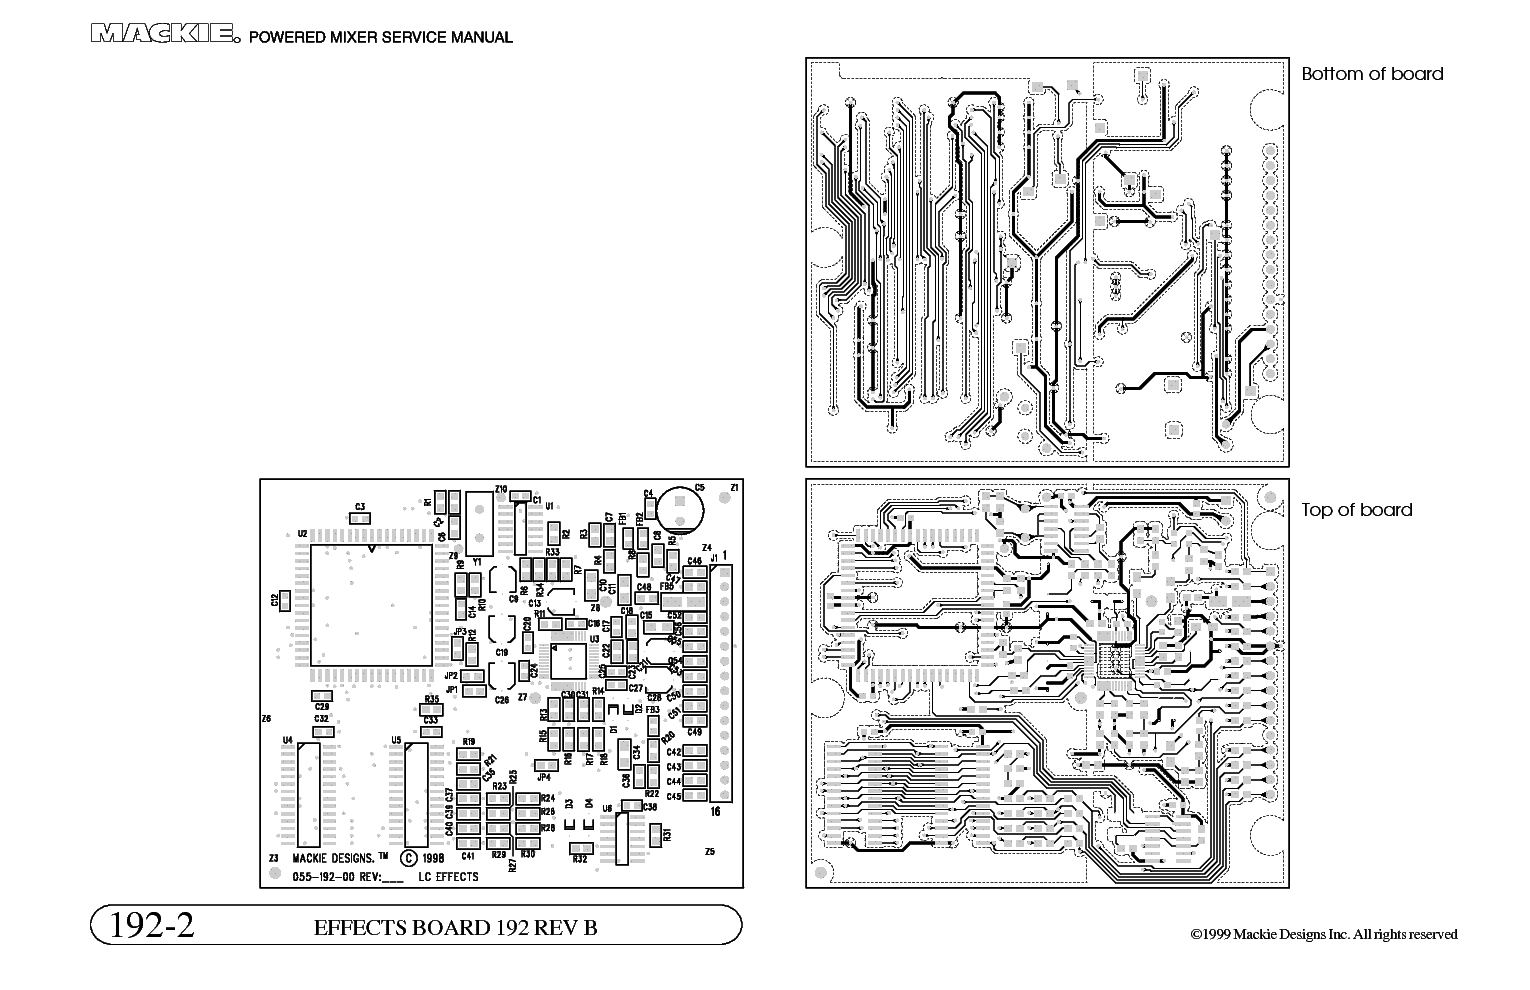 MACKIE 808S MIXER SCH Service Manual download, schematics